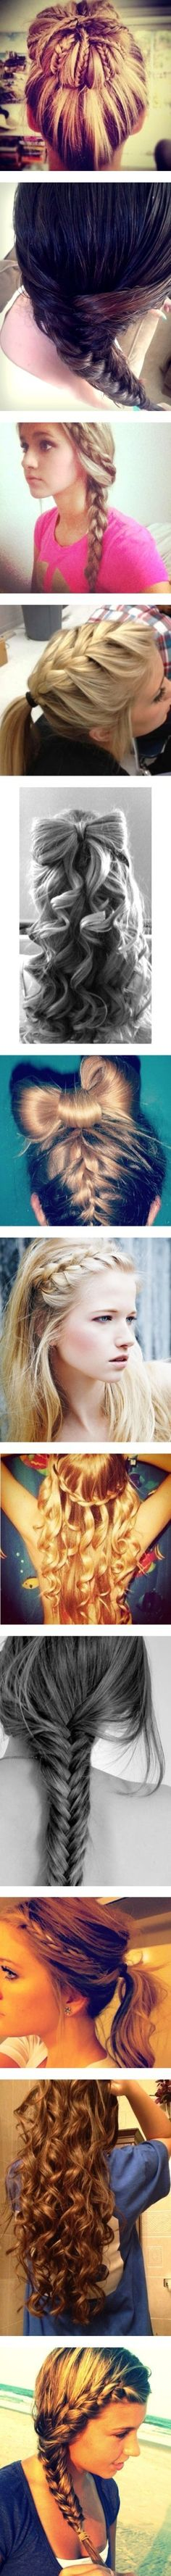 """Different Ways To Braid Your Hair """"Part 4"""" 